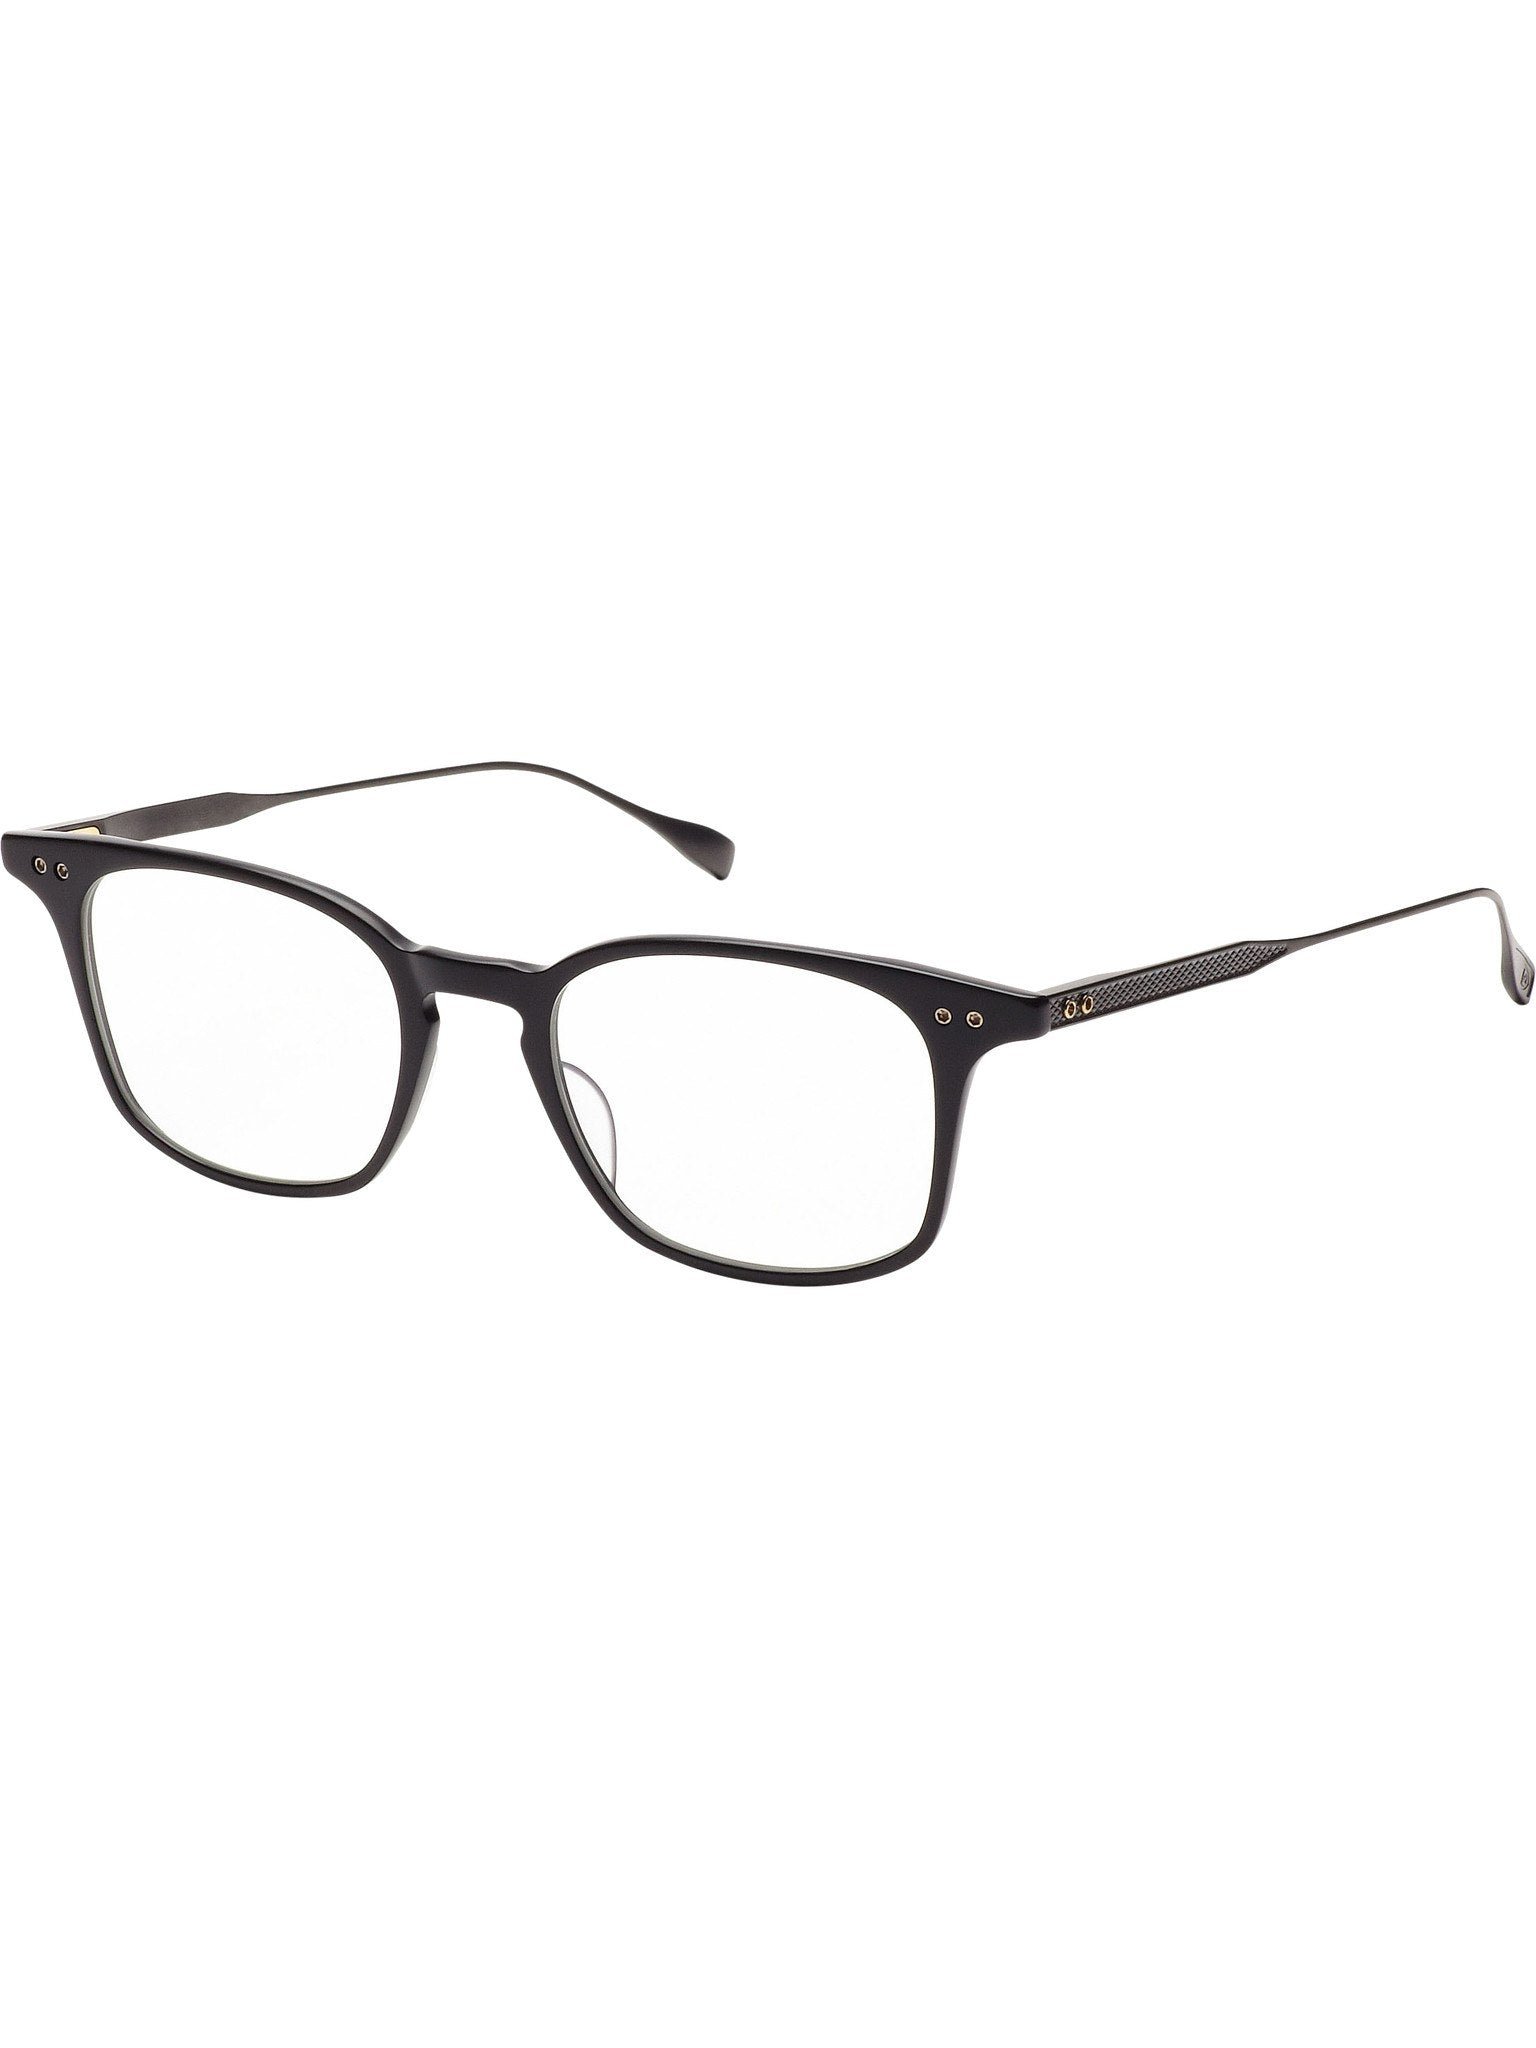 Optical Frame - Dita Buckeye DRX-2072-A Glasses